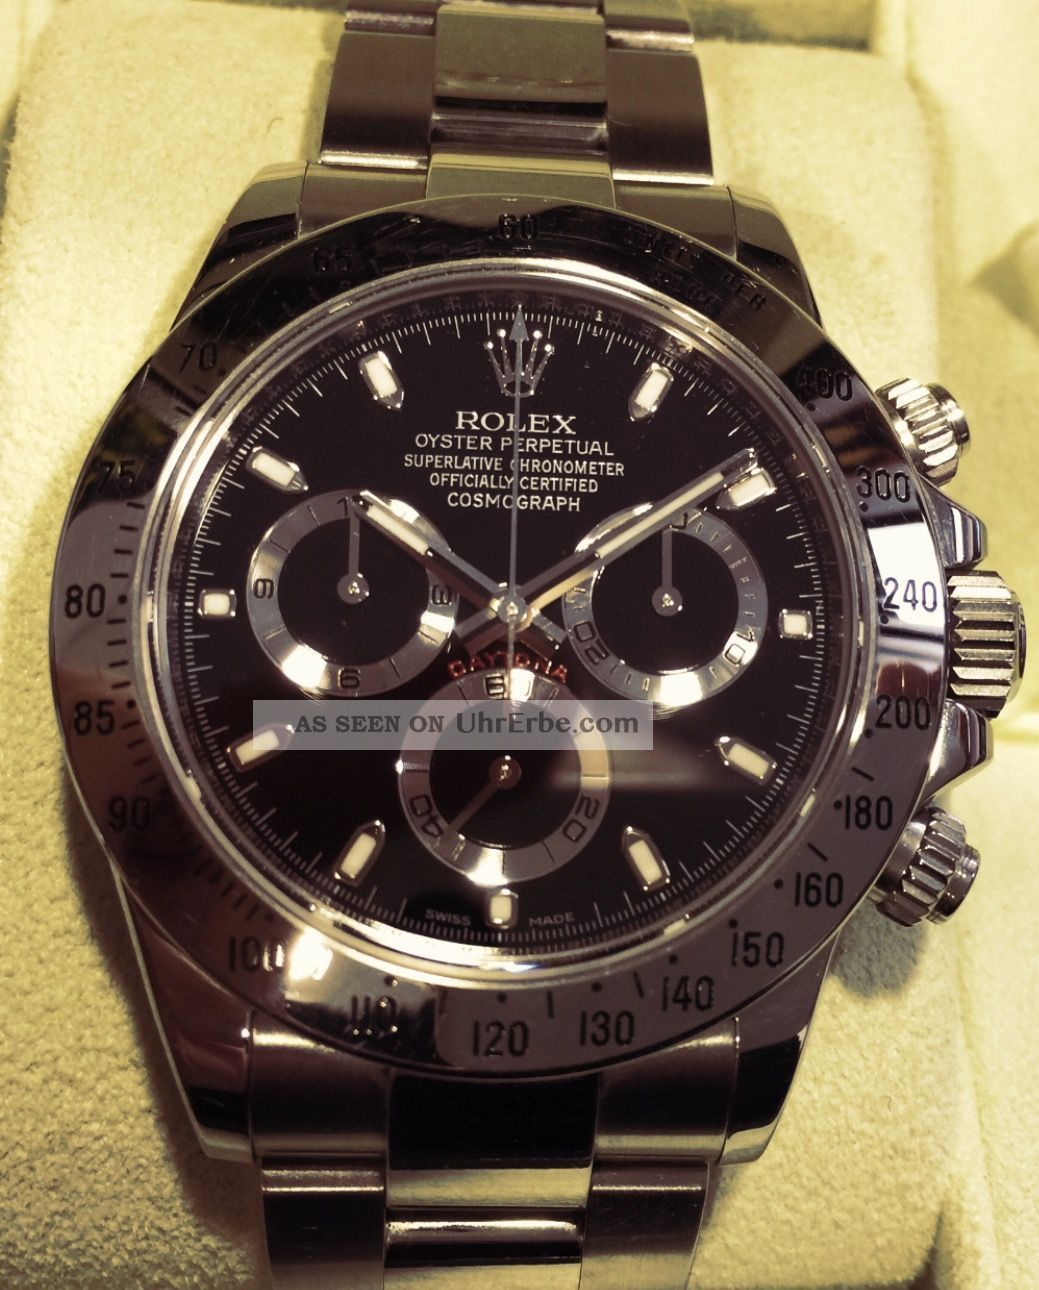 rolex oyster perpetual cosmograph daytona armbanduhr f r. Black Bedroom Furniture Sets. Home Design Ideas